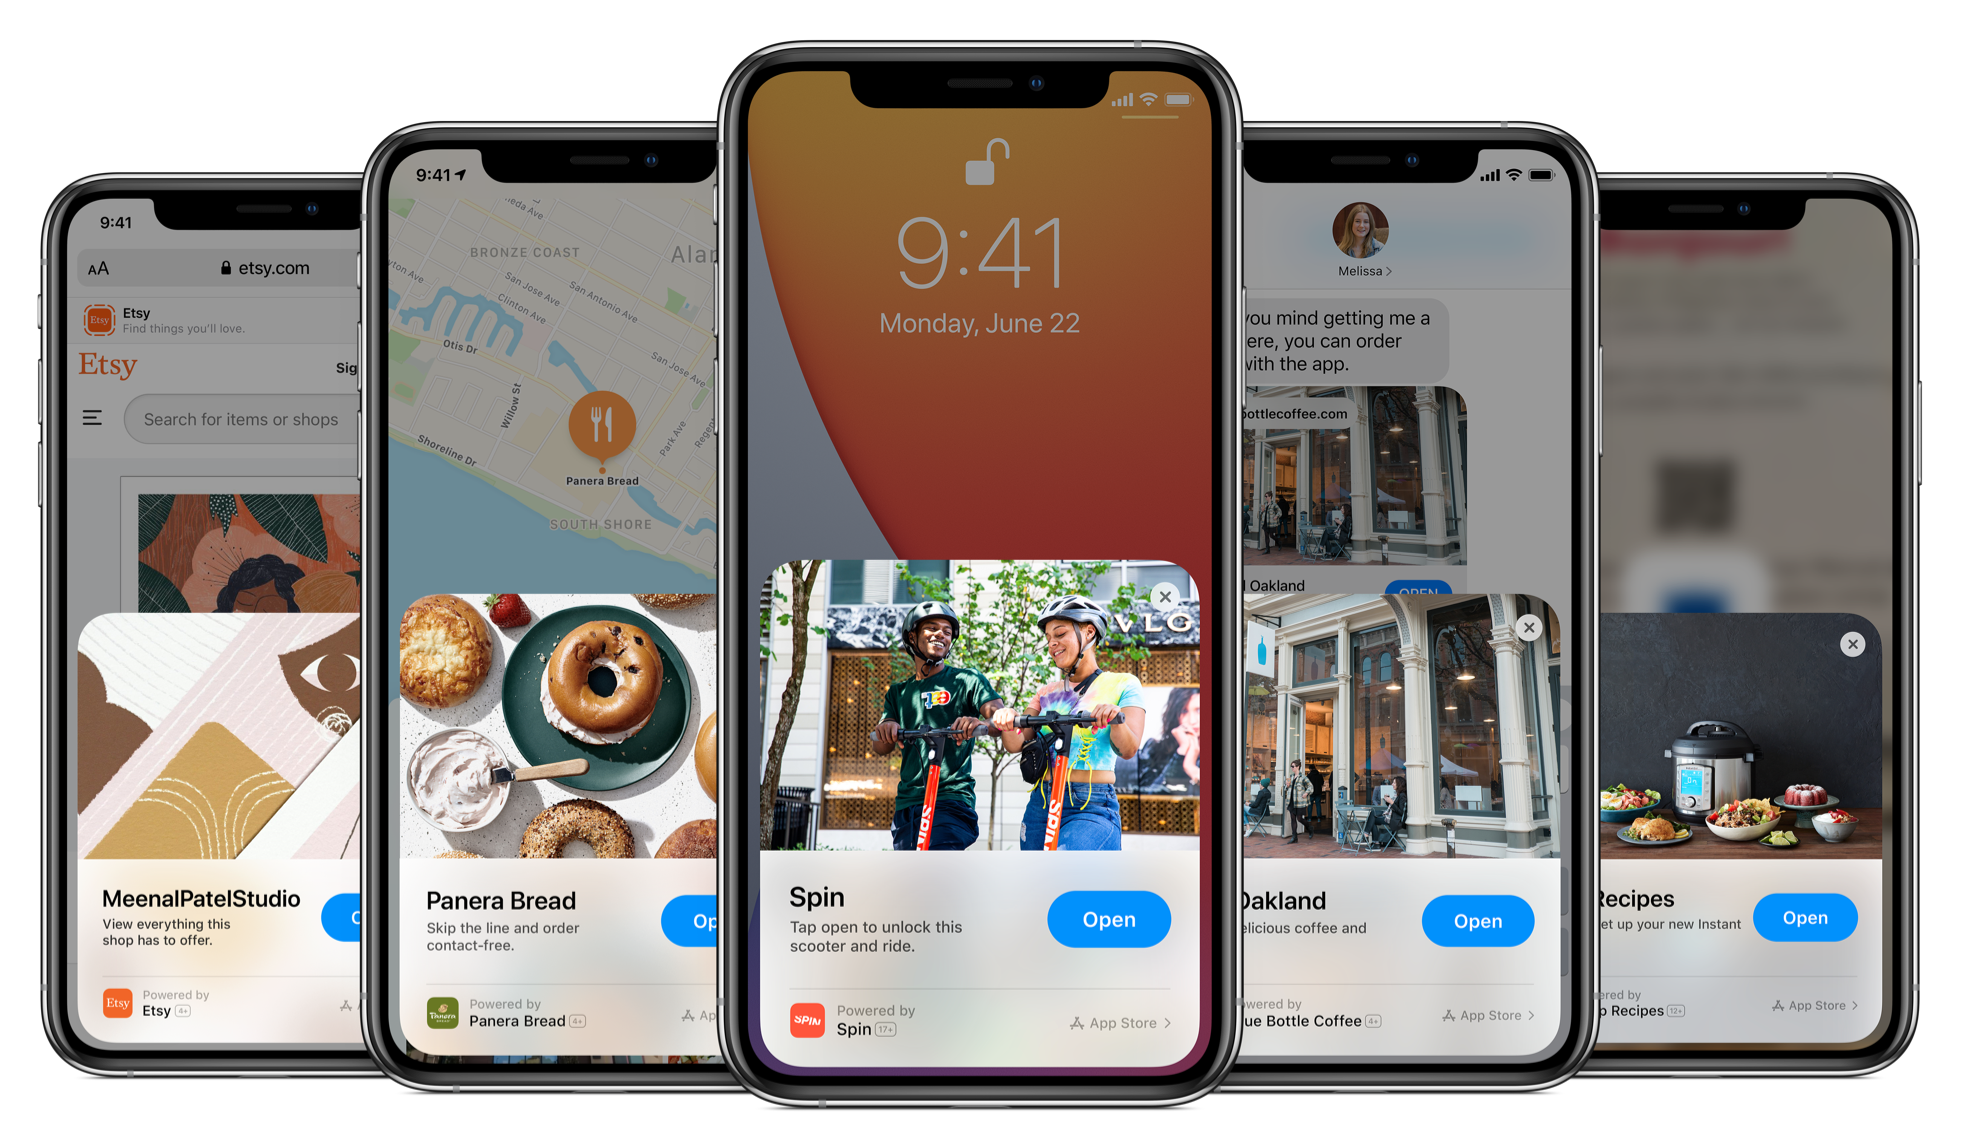 App Clips will allow users to try out apps without having to download them first